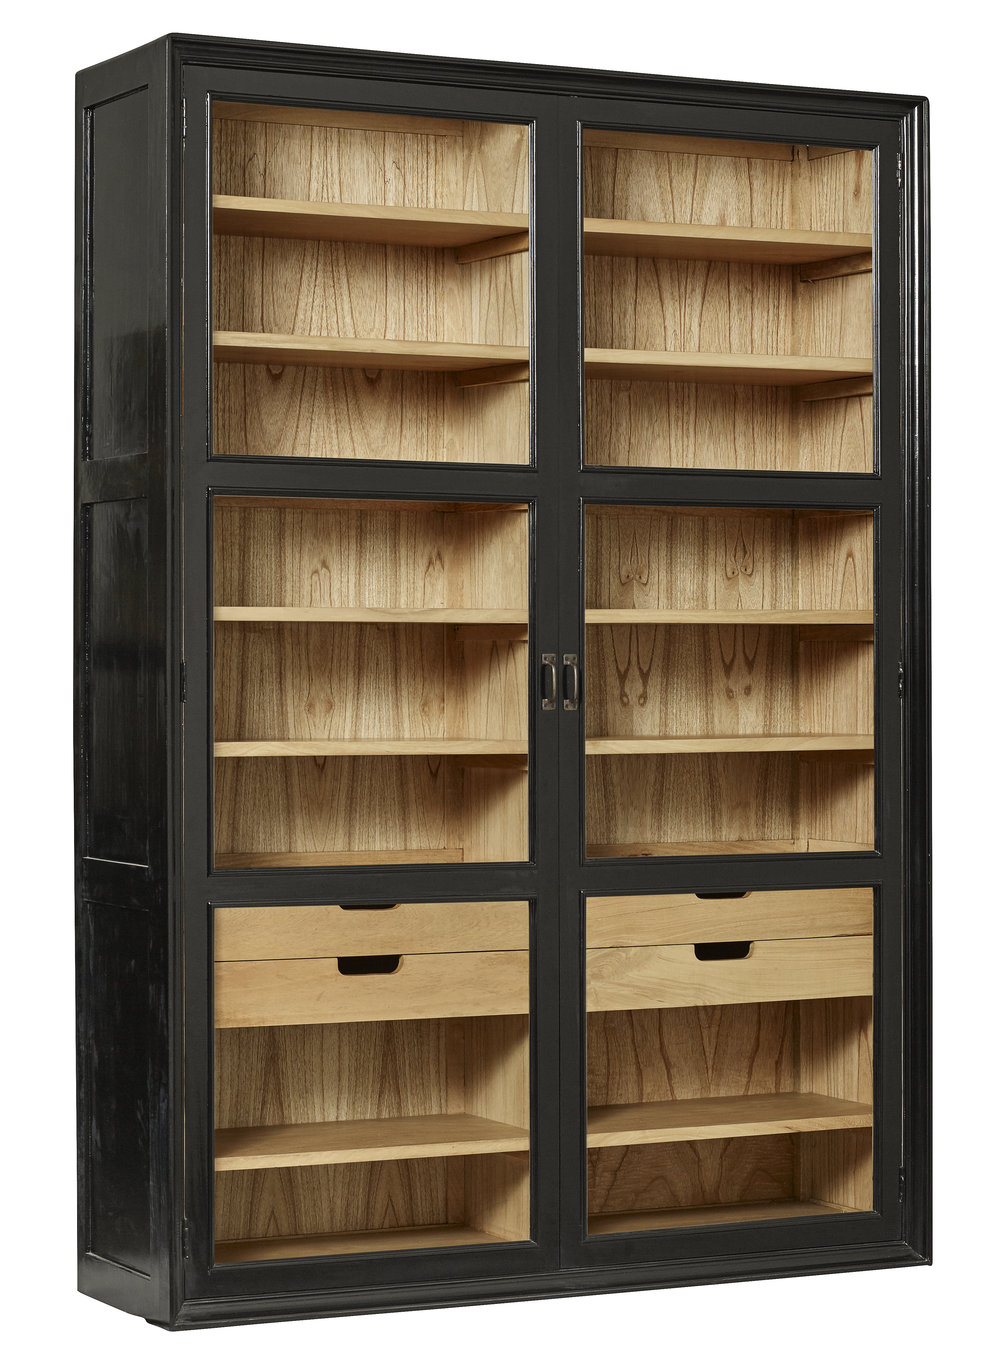 Mango Wood Cabinet With Glass Doors